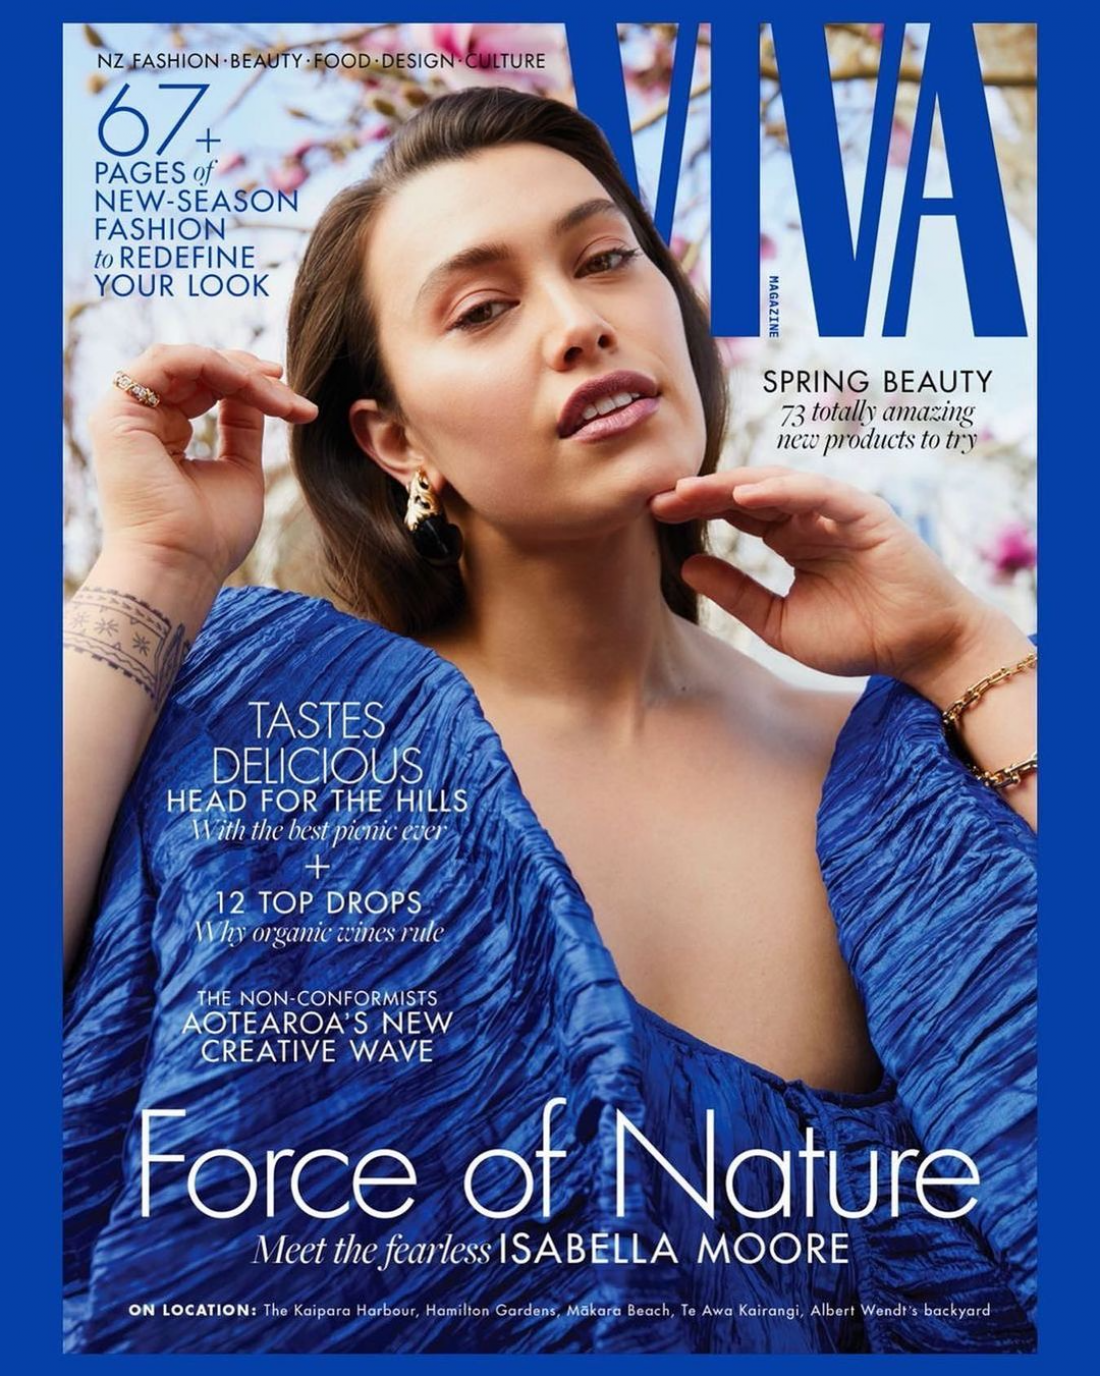 #Force of Nature #ISABELLA covers Viva Glossy Spring Issue  Photographed by Mara Sommer wearing a design by  Havilah Arendse @havilah.label Fashion & Concept by Dan Ahwa Hair by @seanpatrickmahoney & make up by @geegee_makeupartist  writing @amanda_linnell , Viva Editor.